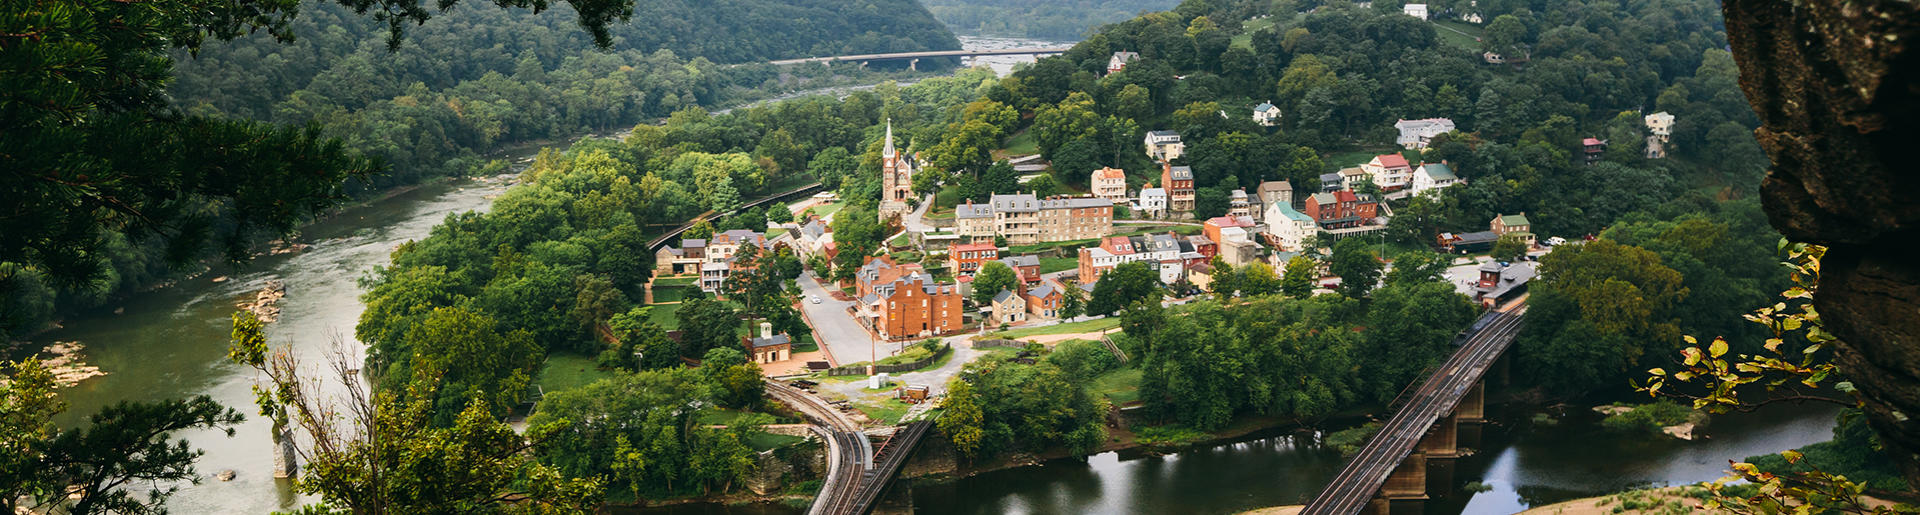 View of Harpers Ferry West Virginia from Maryland Heights Trail